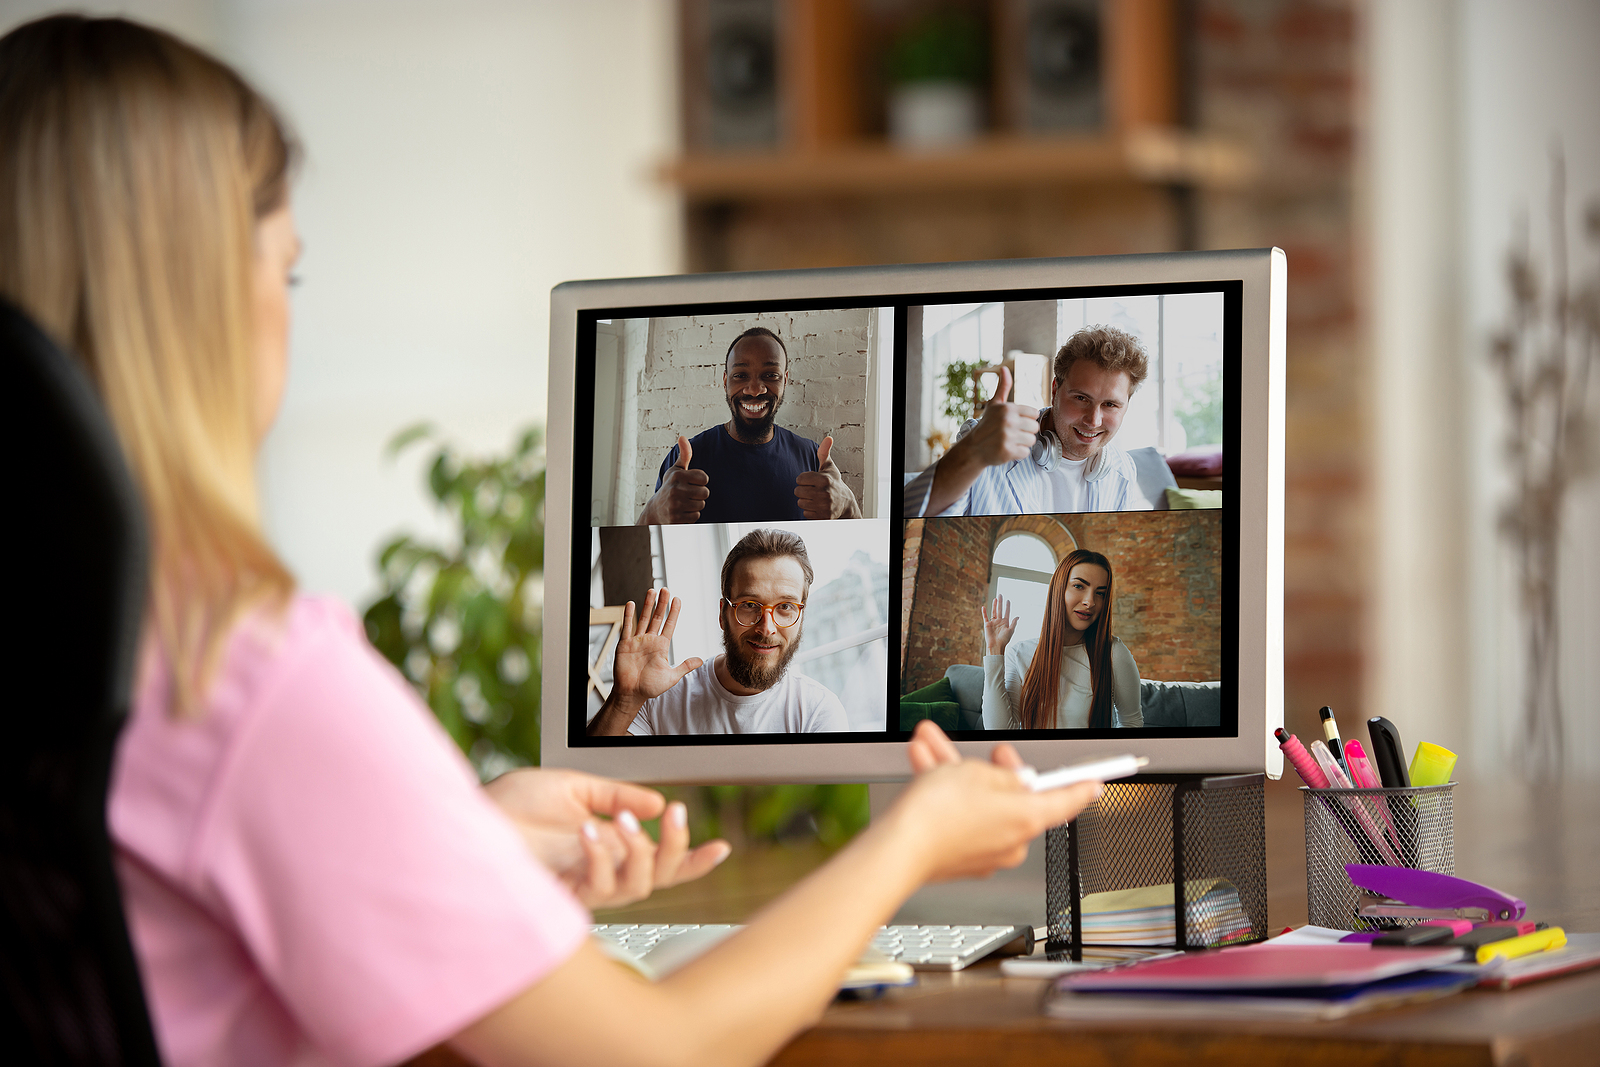 How to Work With a Partially Remote Team